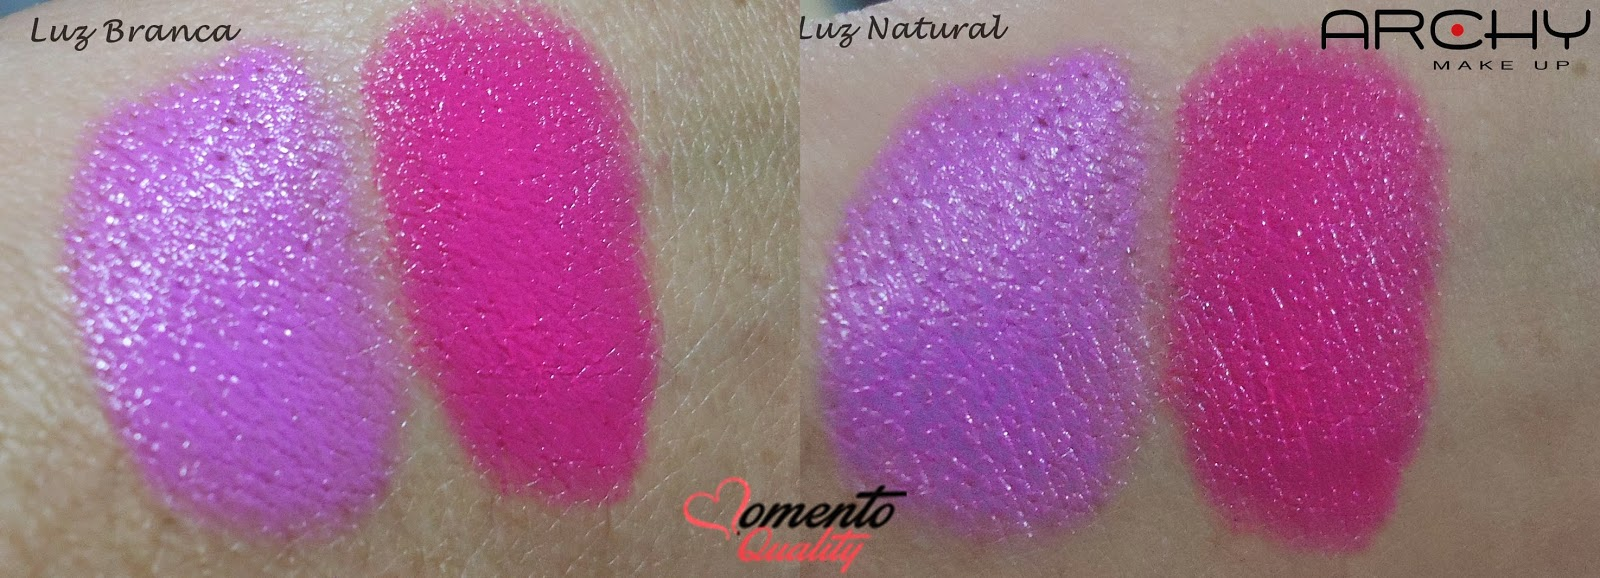 Batom Archy Make Up Swatches Momento Quality